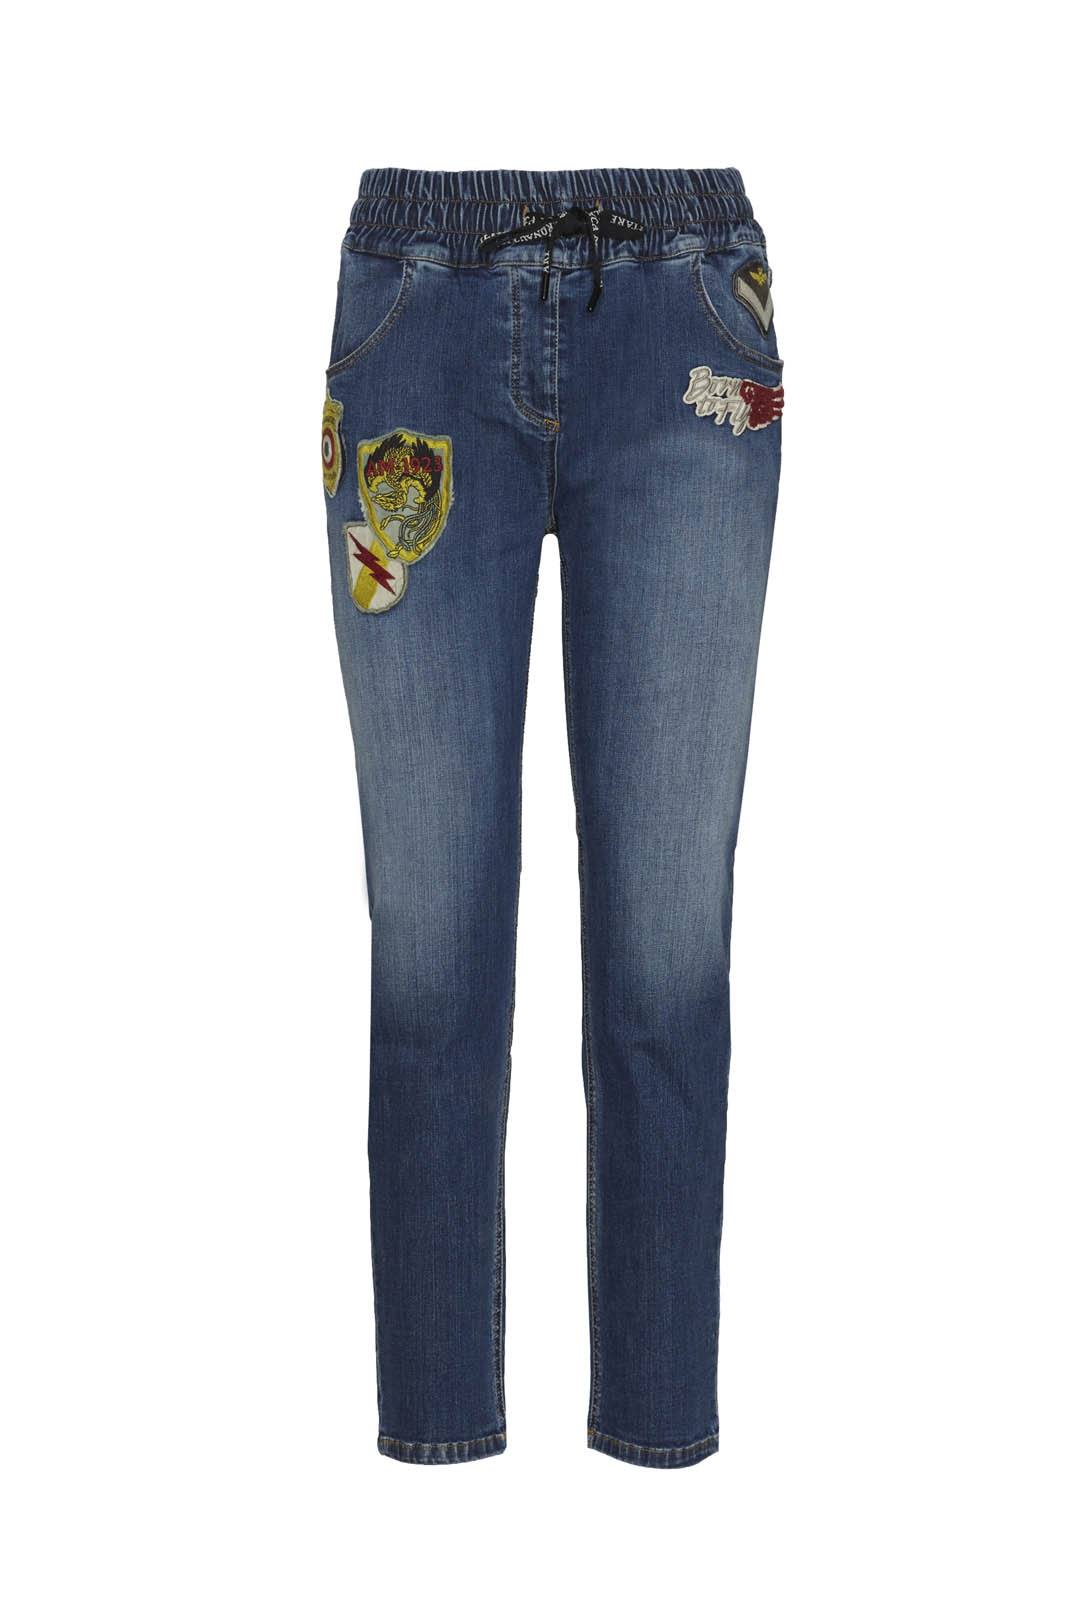 Stretch denim patched jeans